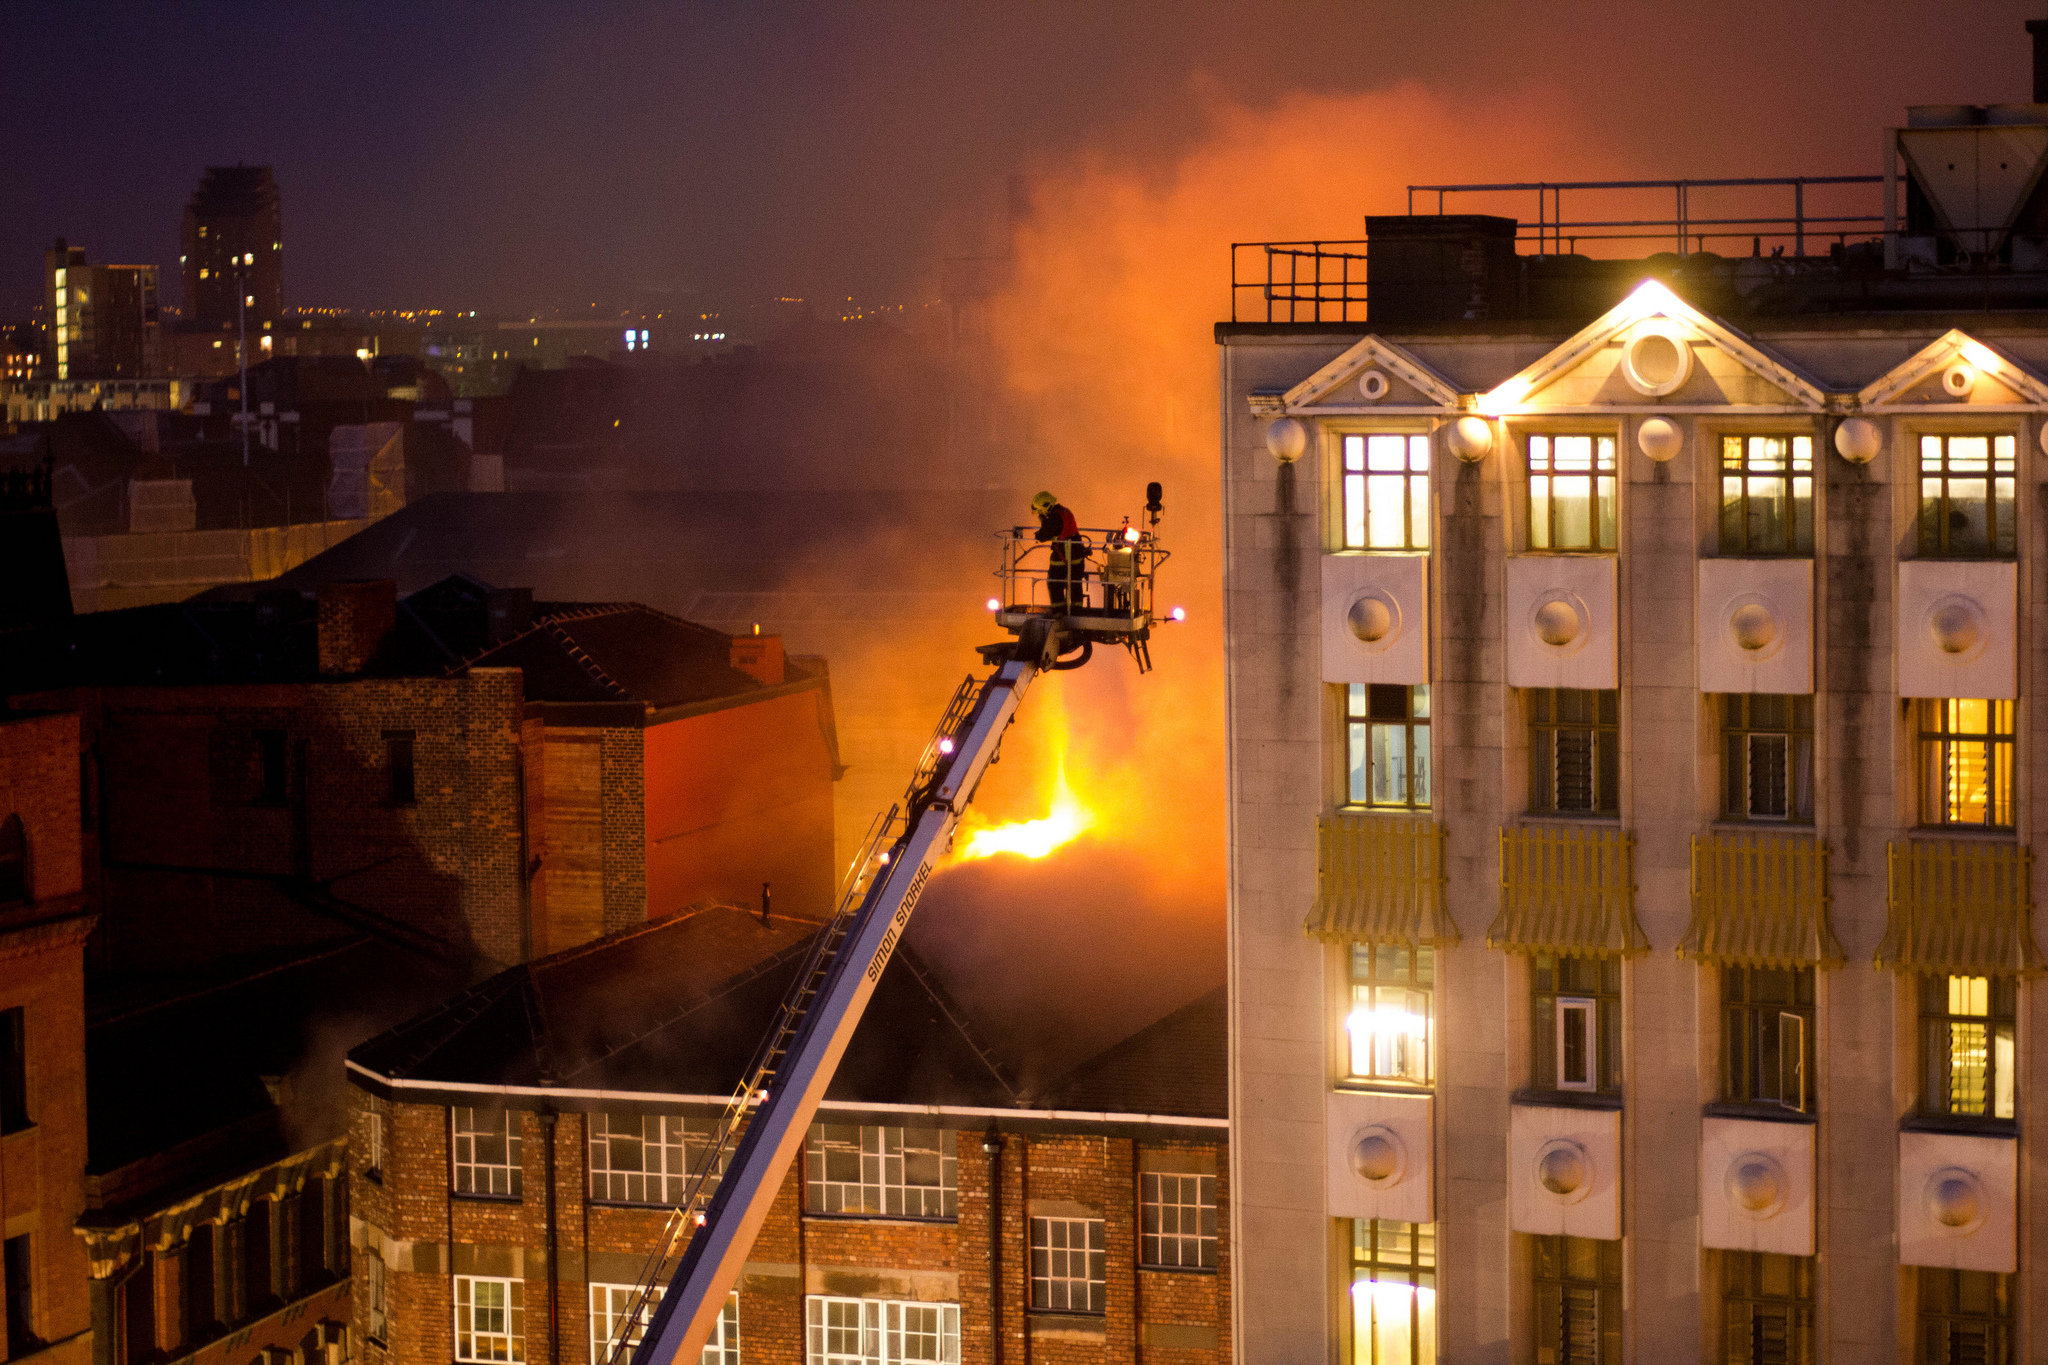 Fire Oldham St. Manchester, Damien Jeanmaire July 13, 2013